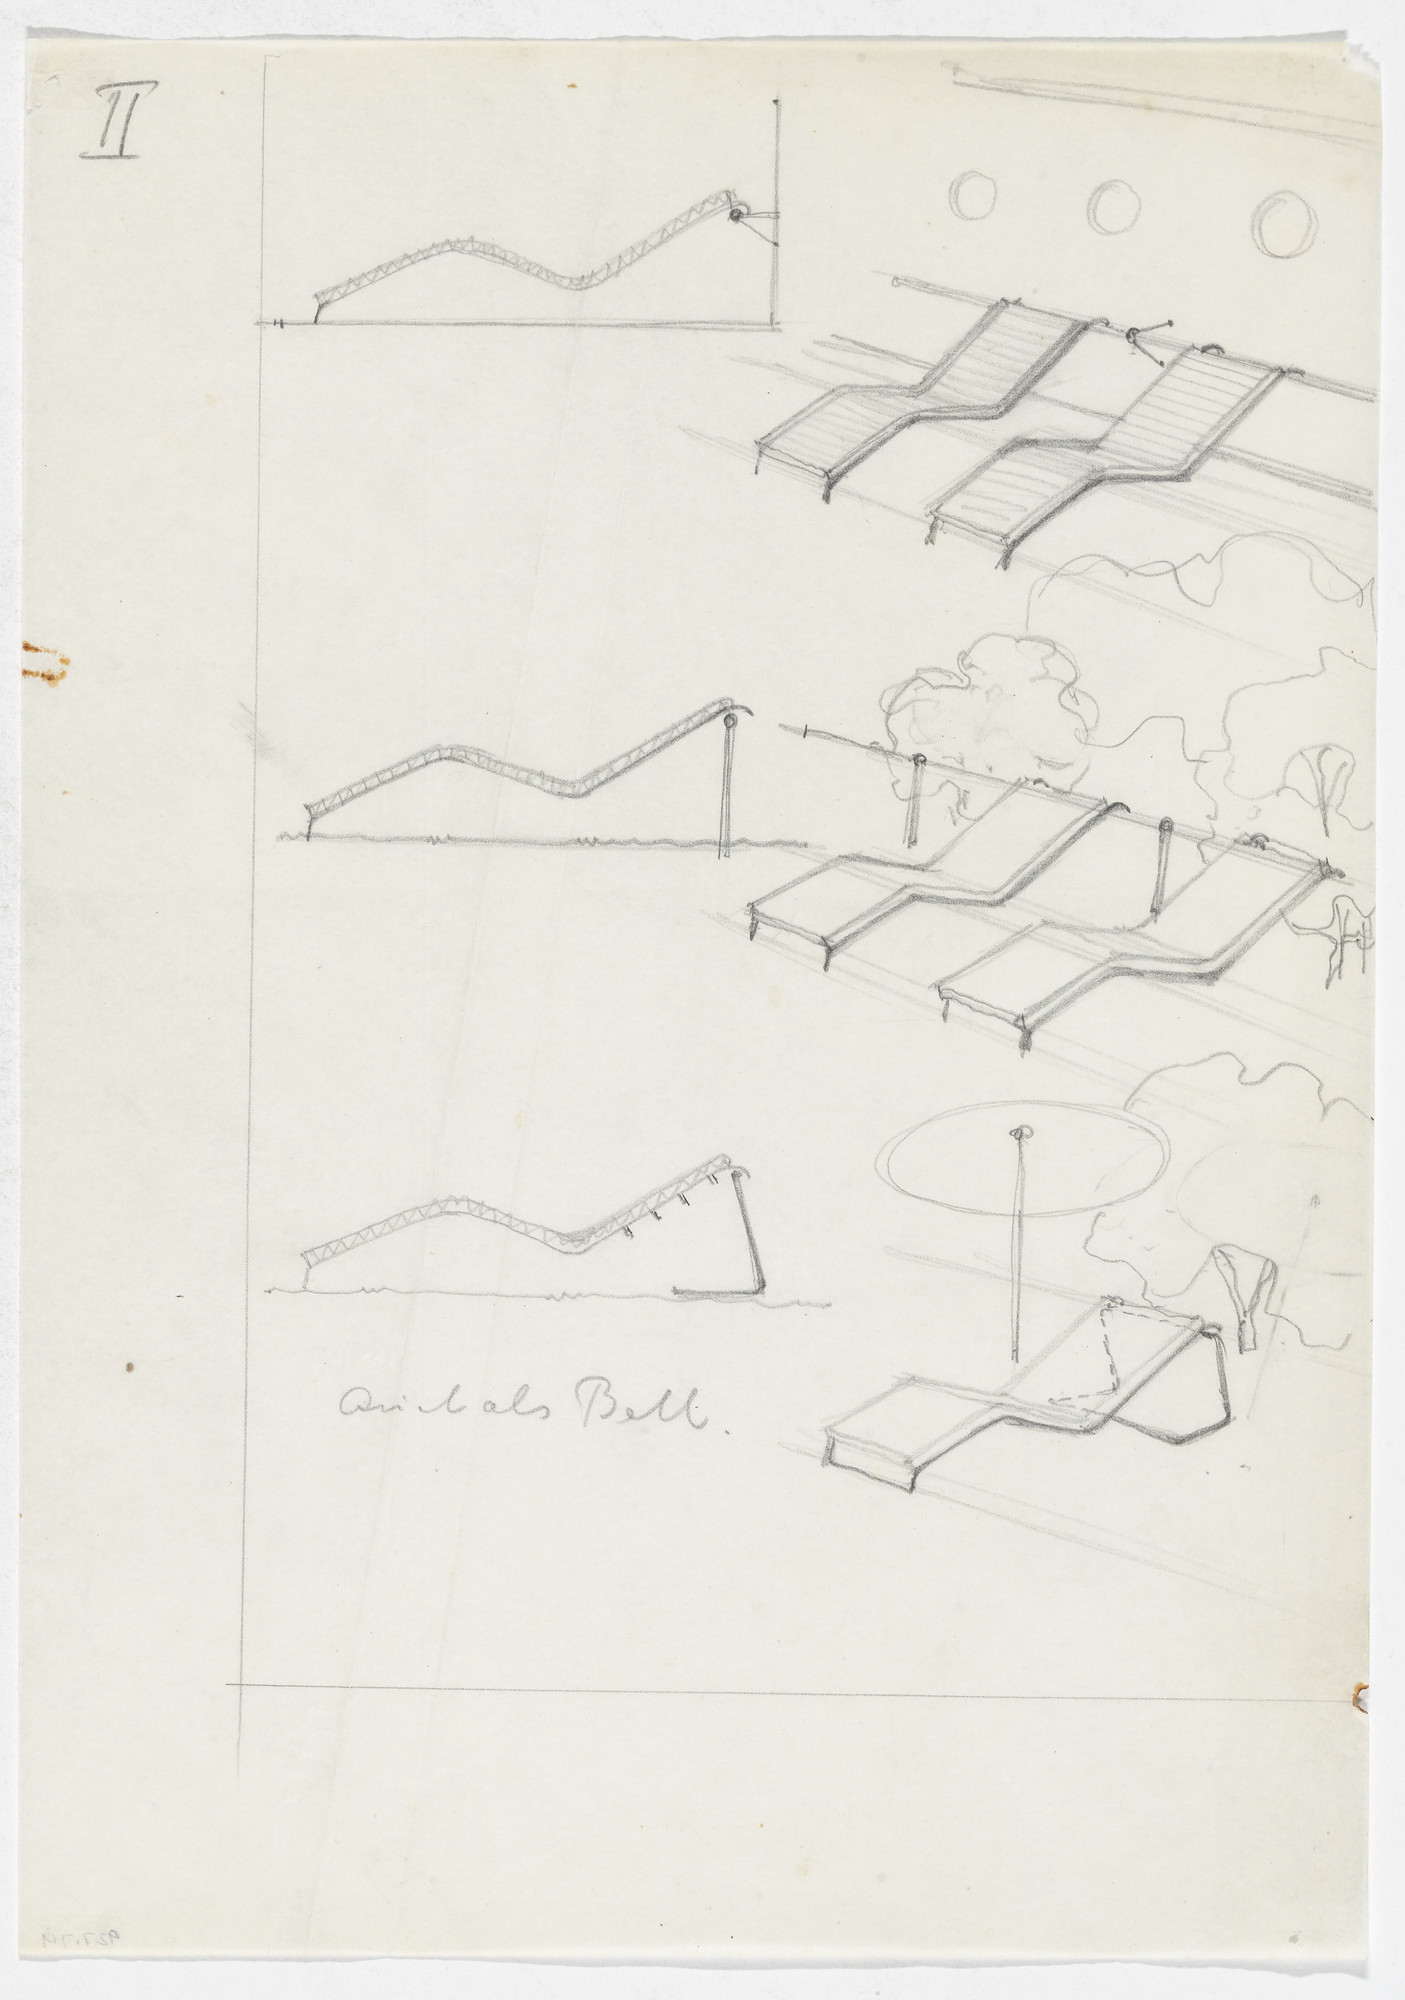 Ludwig Mies van der Rohe. Reclining Frames (Elevation sketches, perspective sketches). 1931-1932